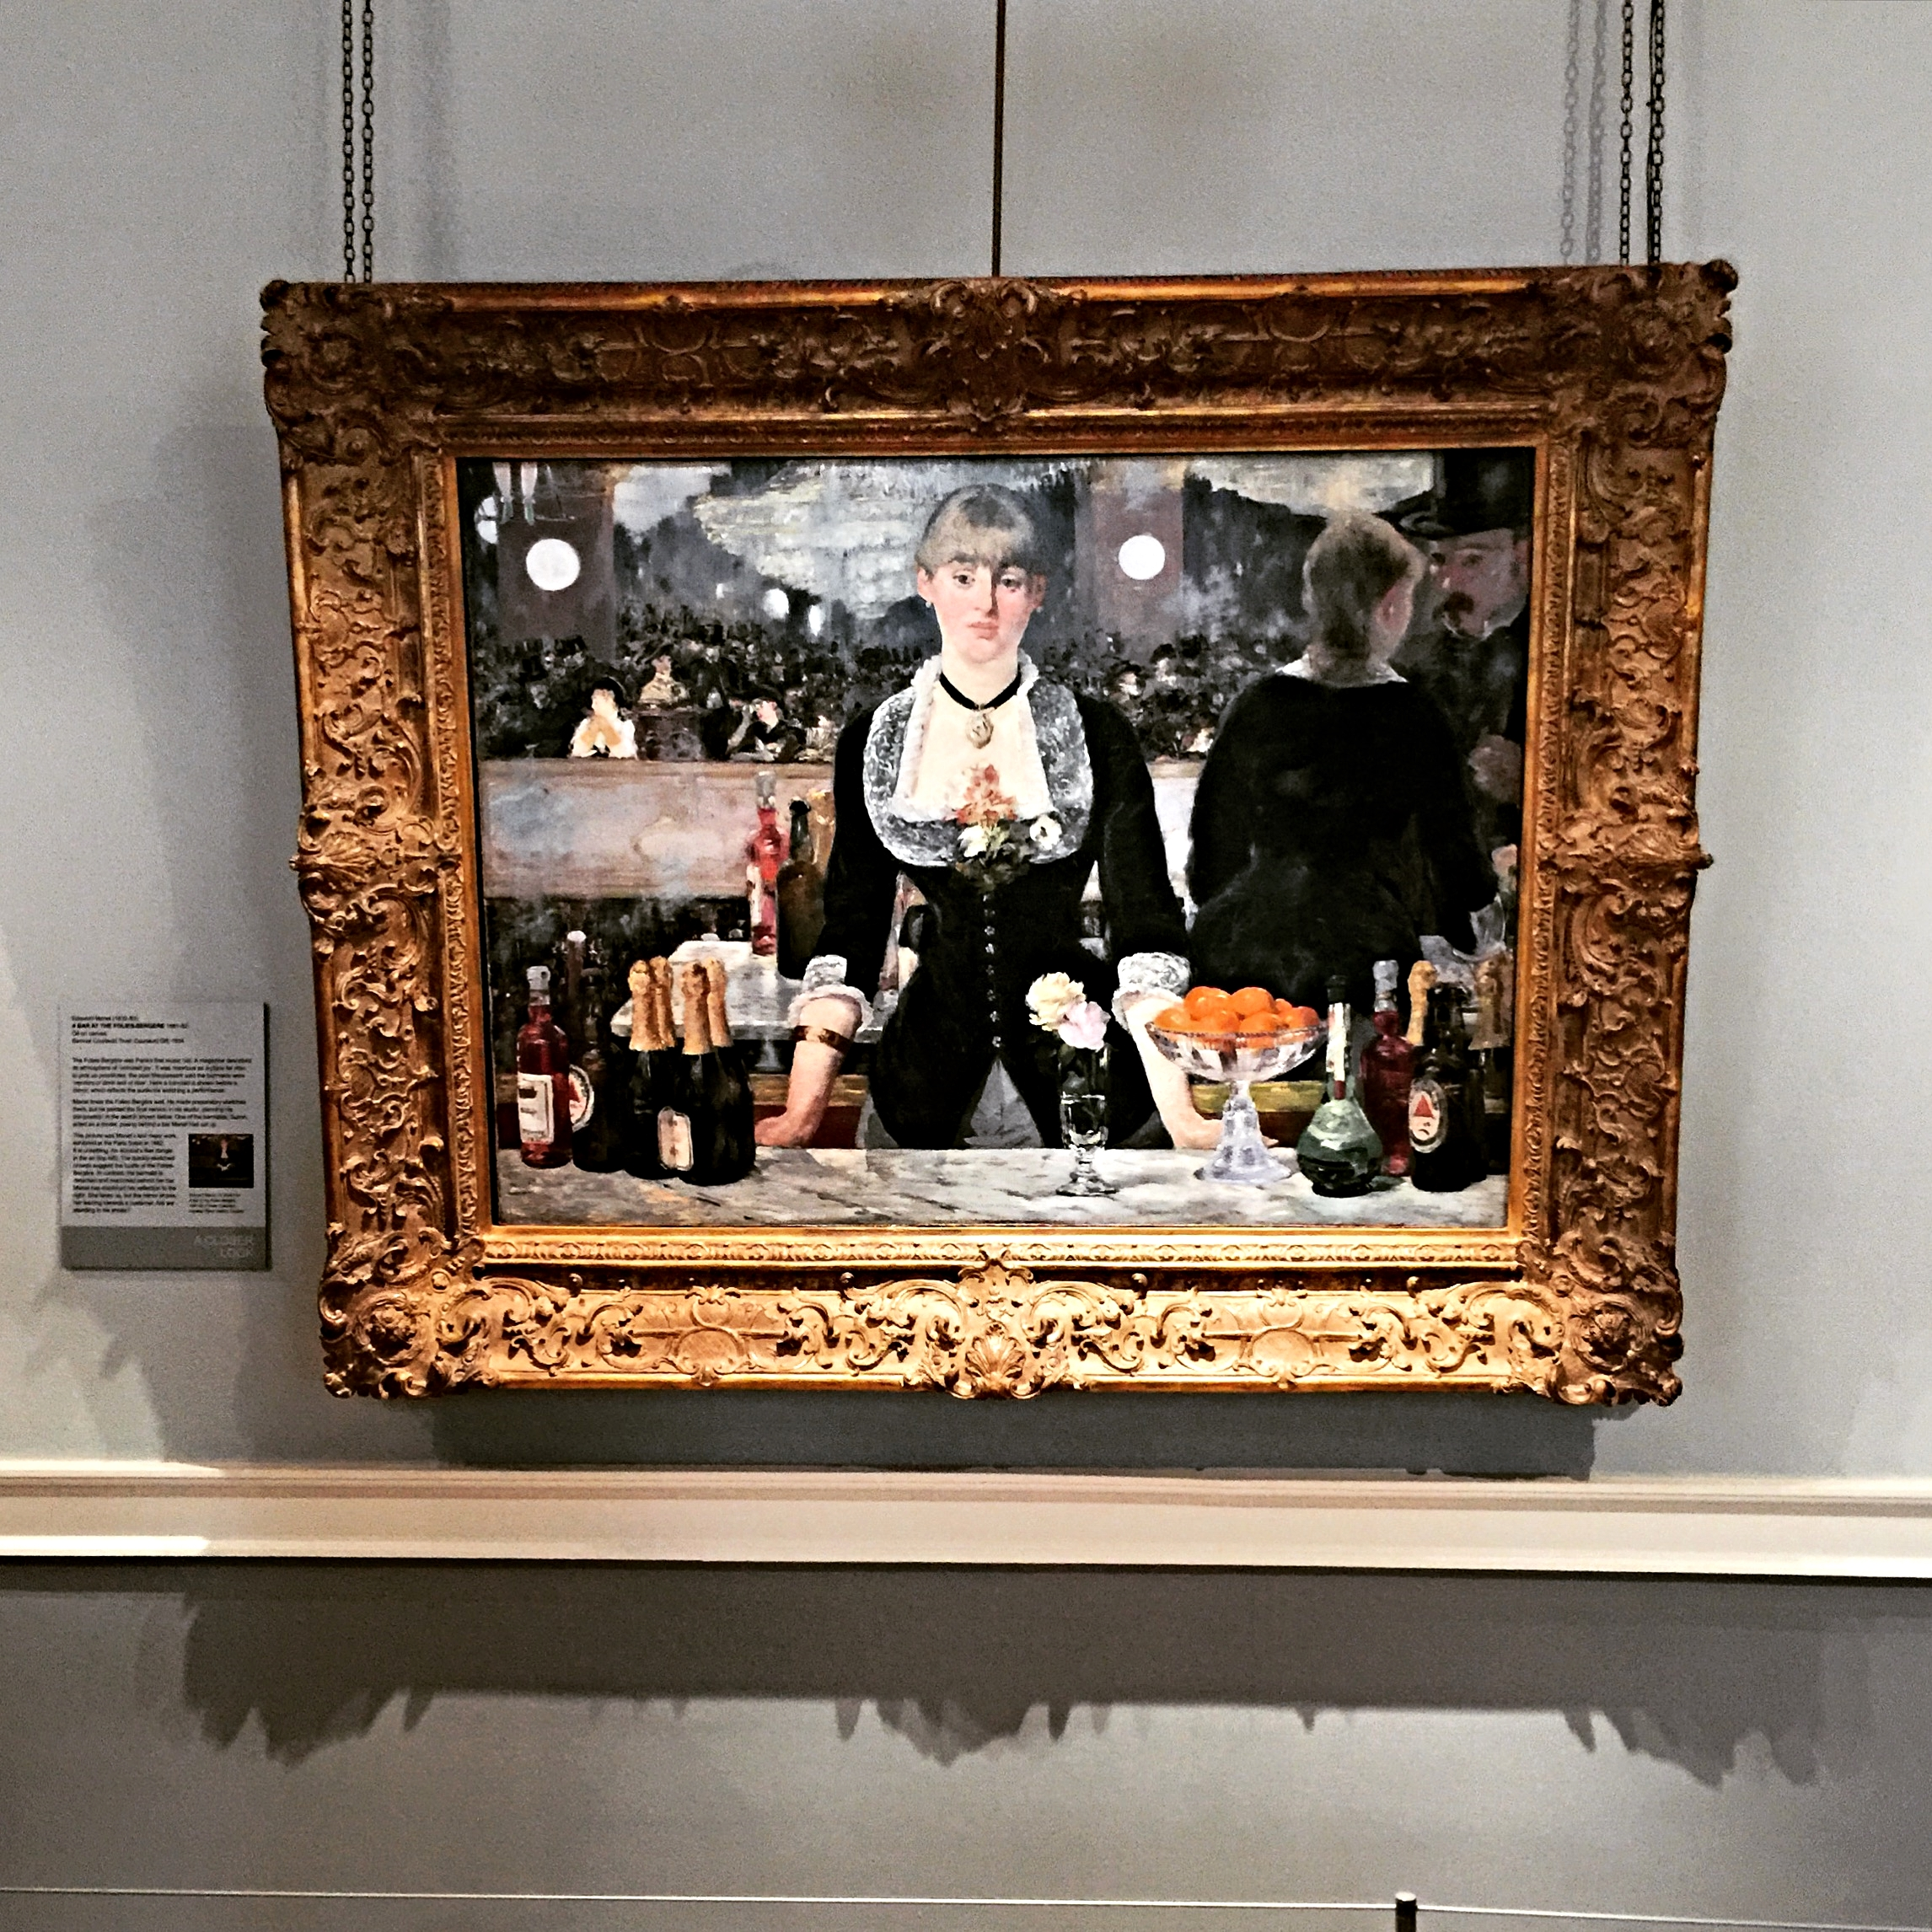 So much art historical energy and writing has gone into Manet's  A Bar at the Folies-Bergère ,painted and exhibited at the Paris Salon in 1882. When in its presence at the Courtauld Institute of Art in London, you cannot help but feel deeply impressed... and moved.